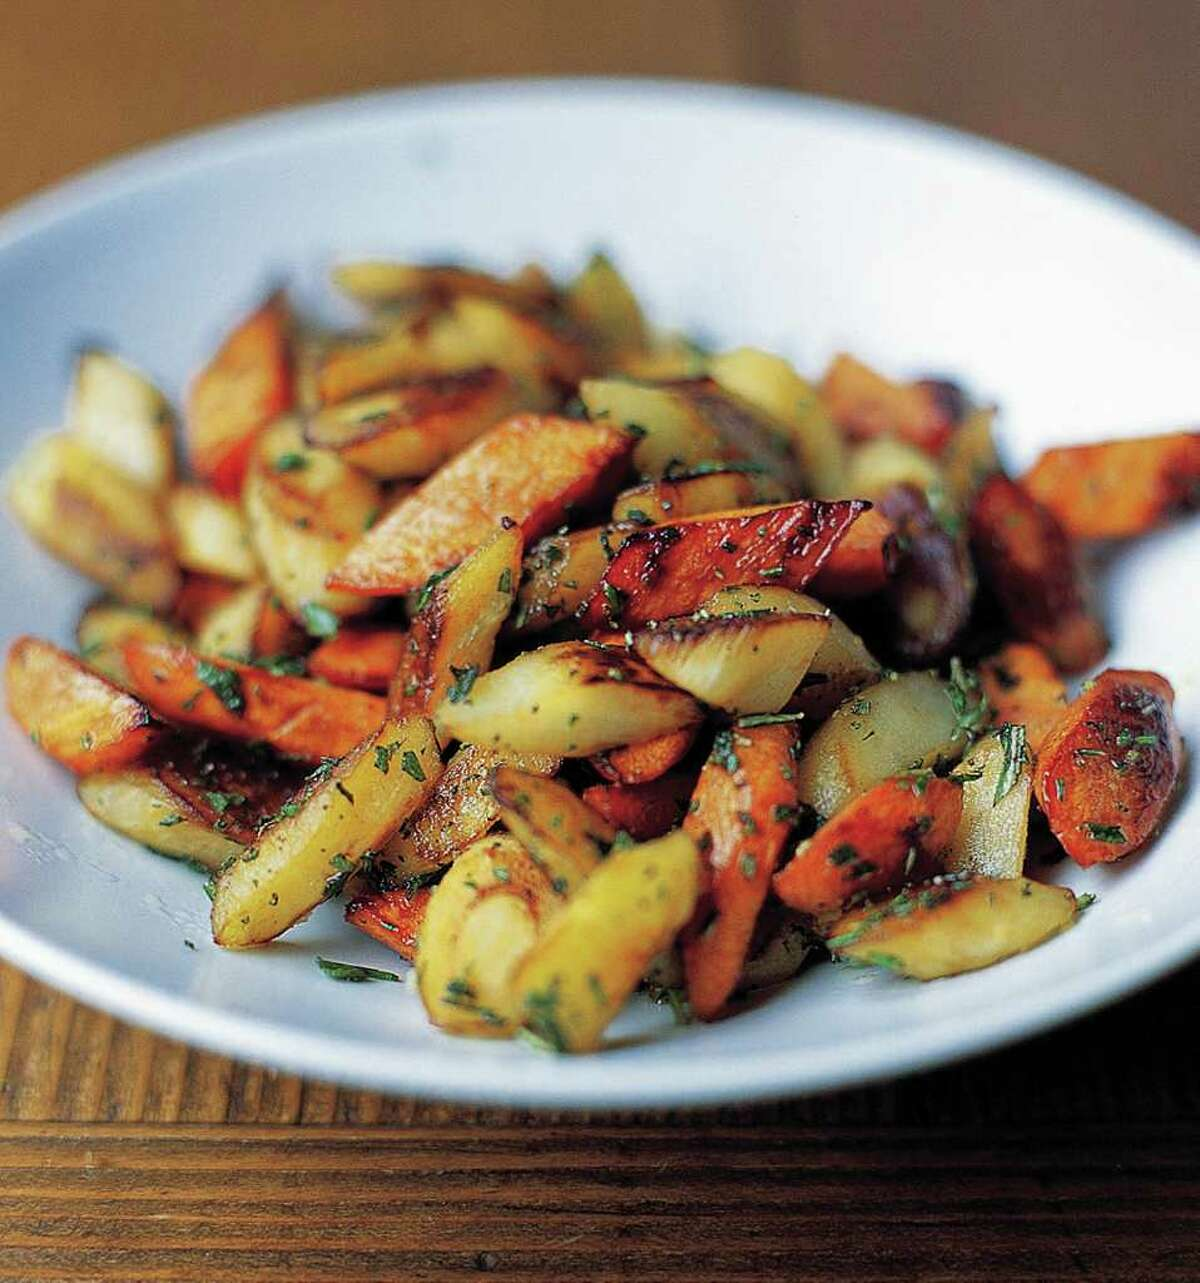 Whip up an easy side dish this December by roasting root vegetables such as carrots, parsnips and turnips. (Ben Fink / Culinary Institute of America)